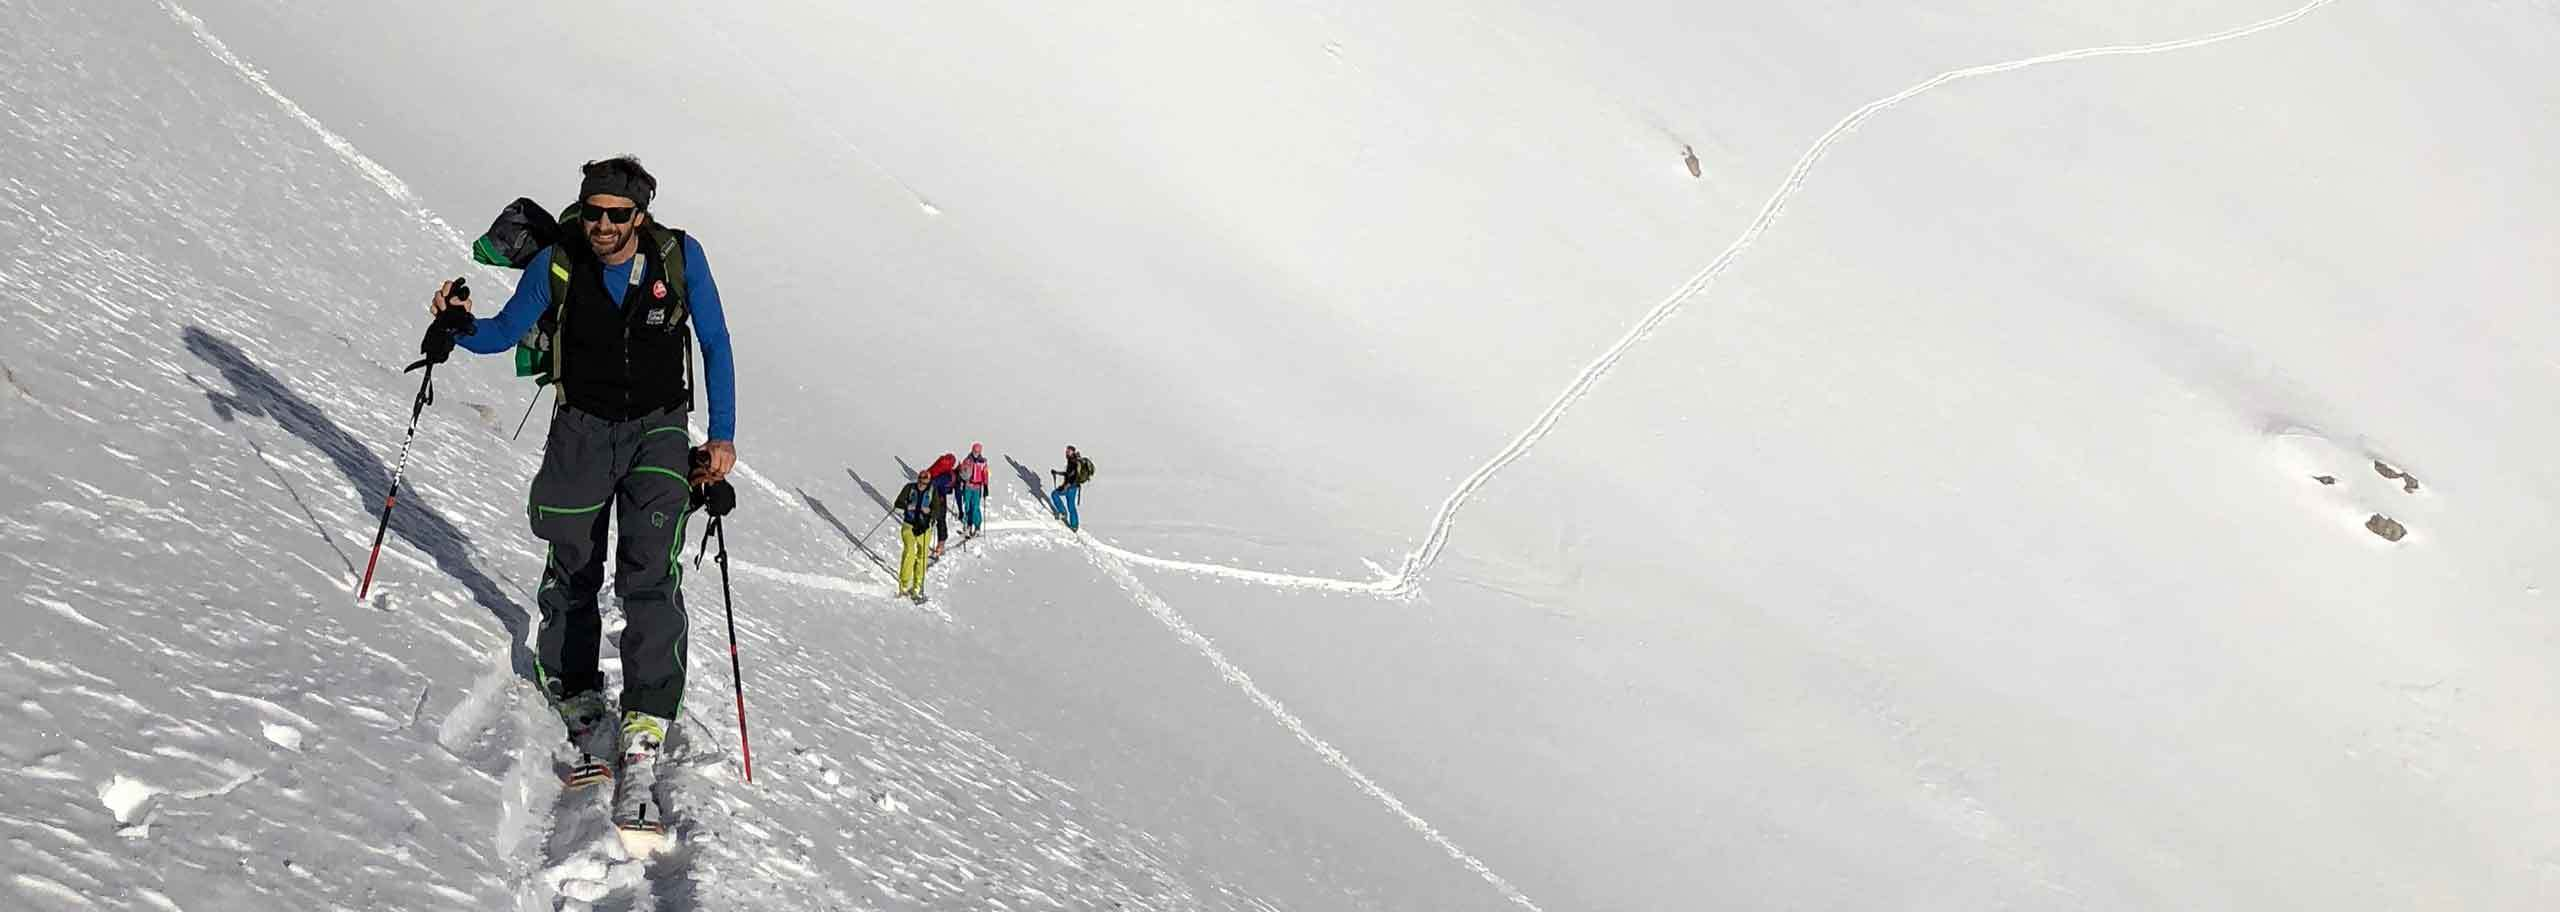 Ski Mountaineering with a Mountain Guide in Bormio